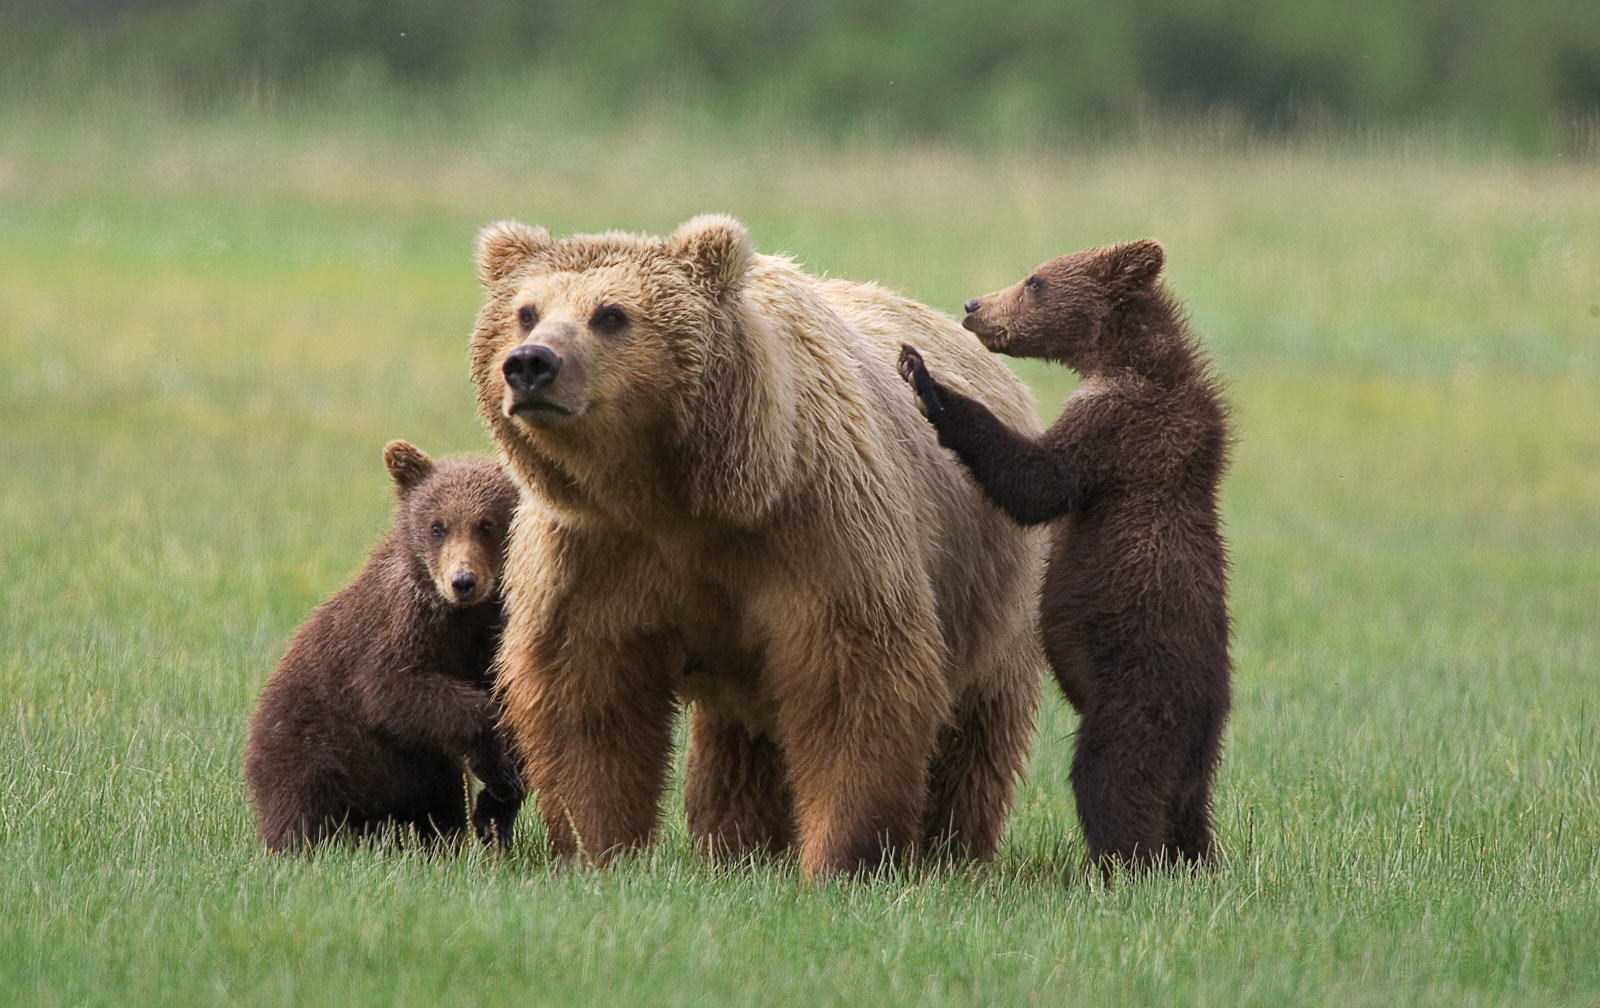 UNILAD mom grizzly8 Man In Bear Costume Harasses Actual Real Life Bears In Alaska